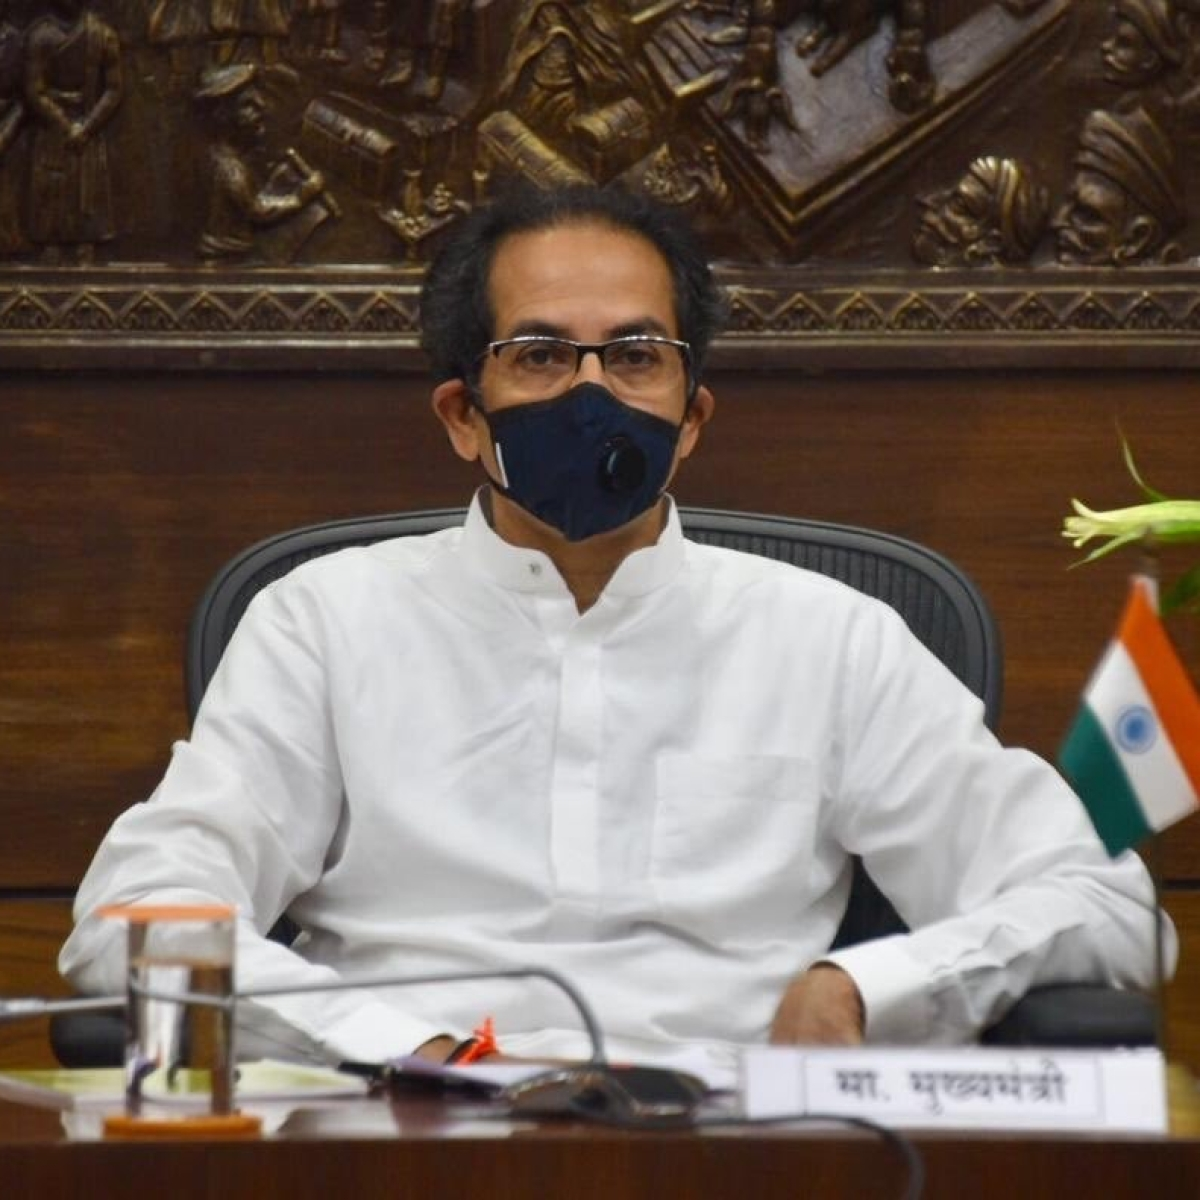 Tiger roars: Chief Minister Uddhav Thackeray opposes gauge conversion work